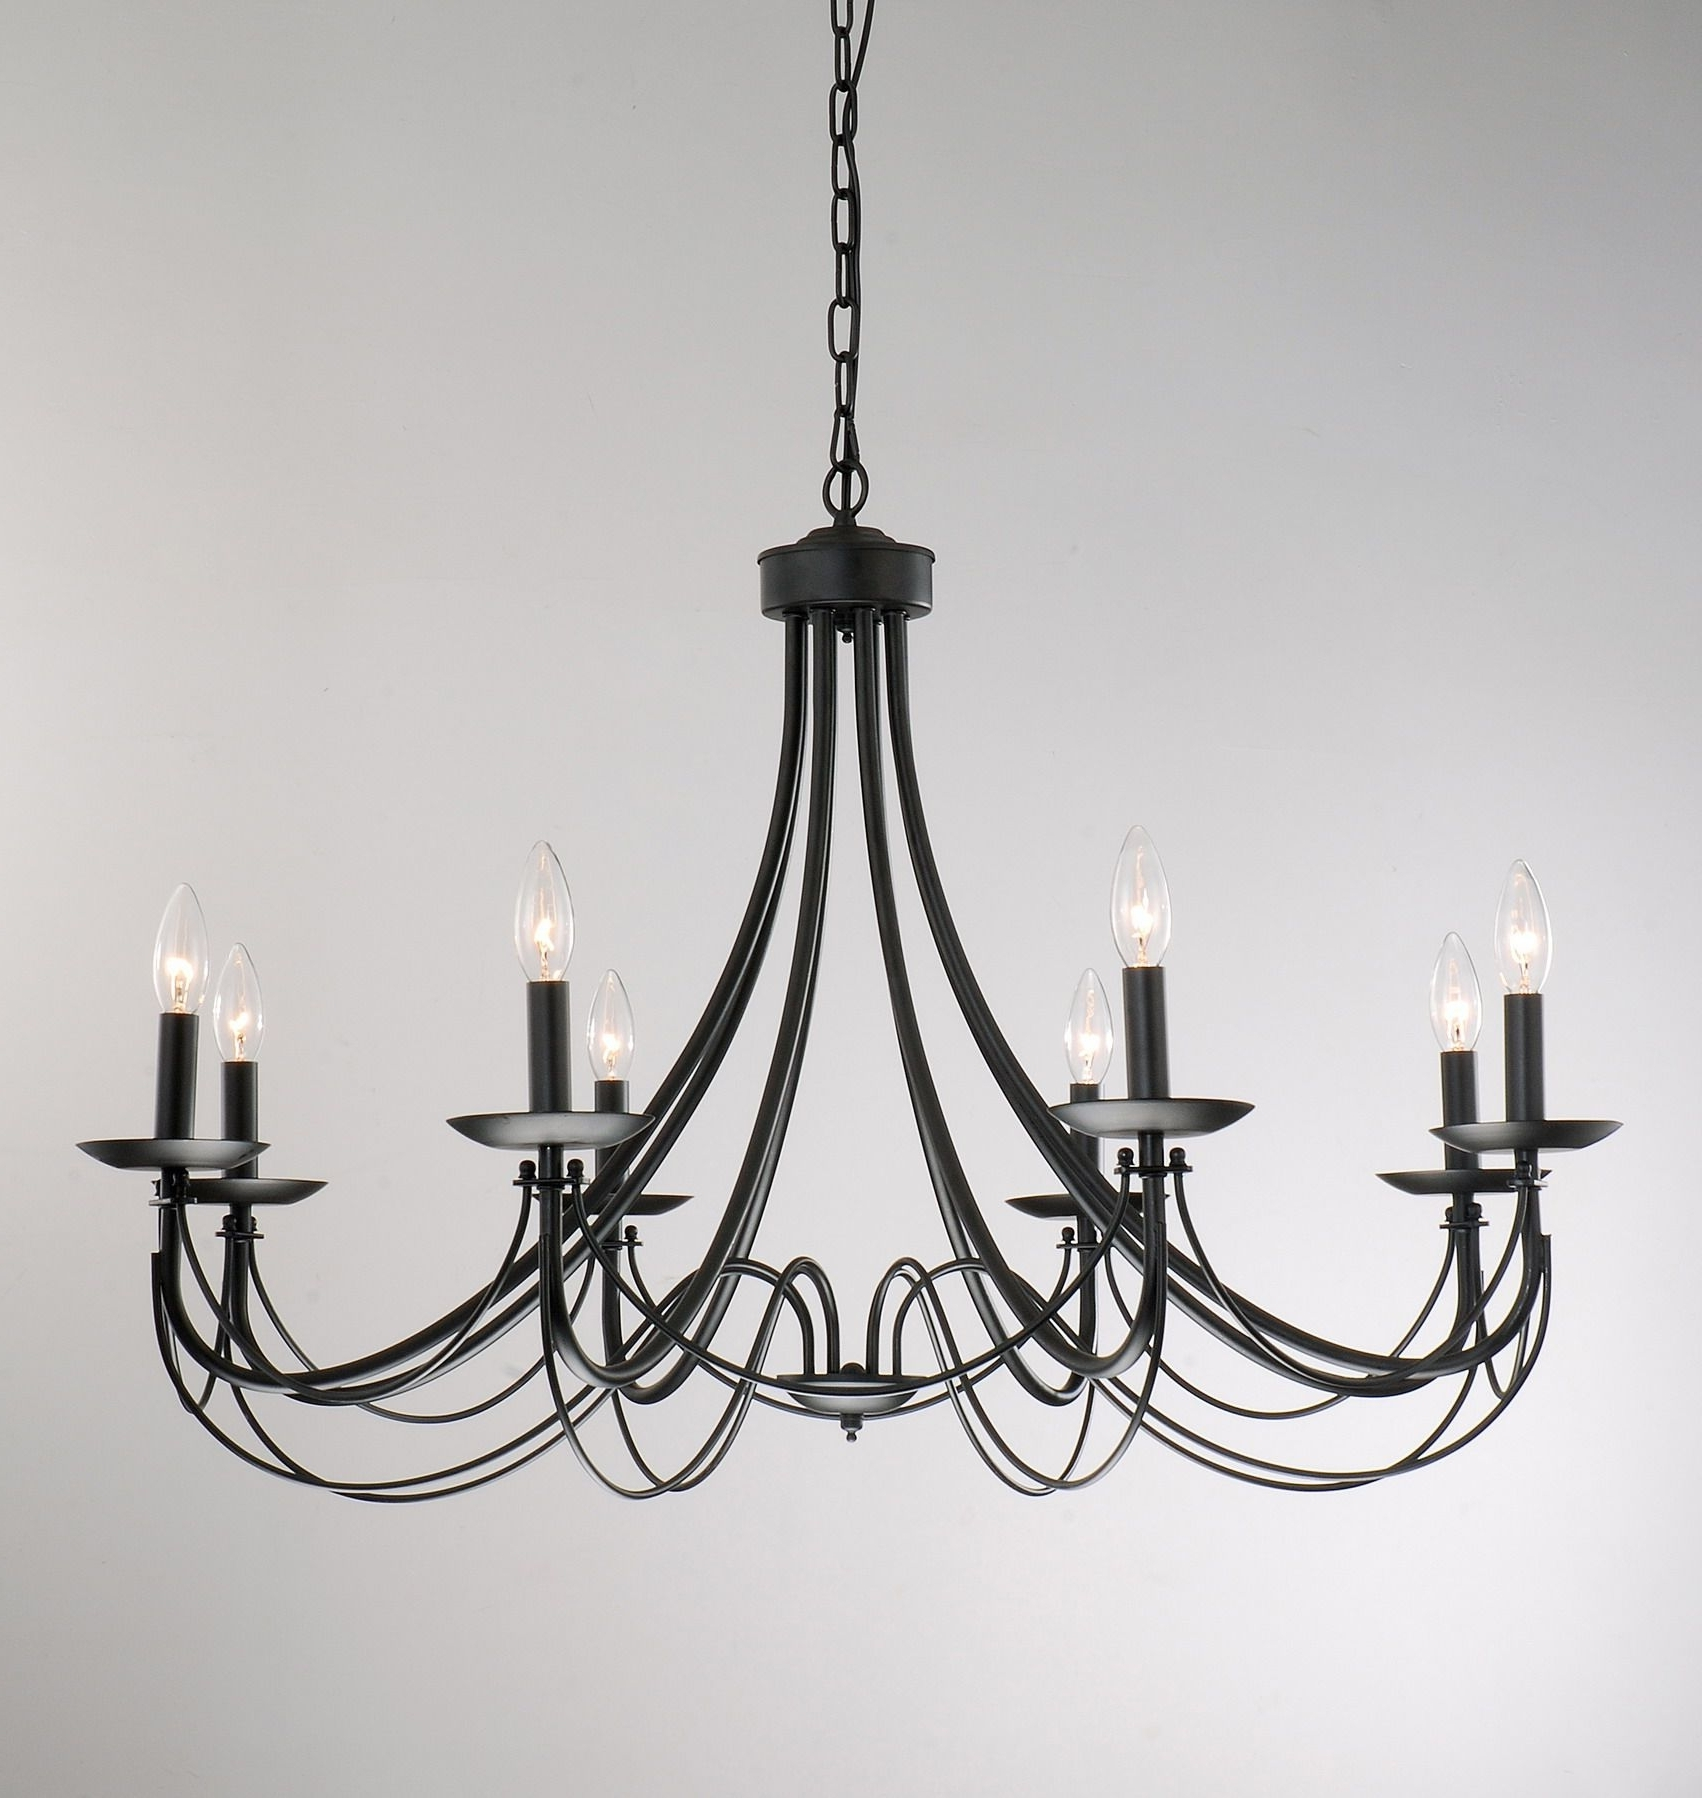 Black Chandelier, Chandeliers And Lights Pertaining To Black Iron Chandeliers (View 4 of 15)